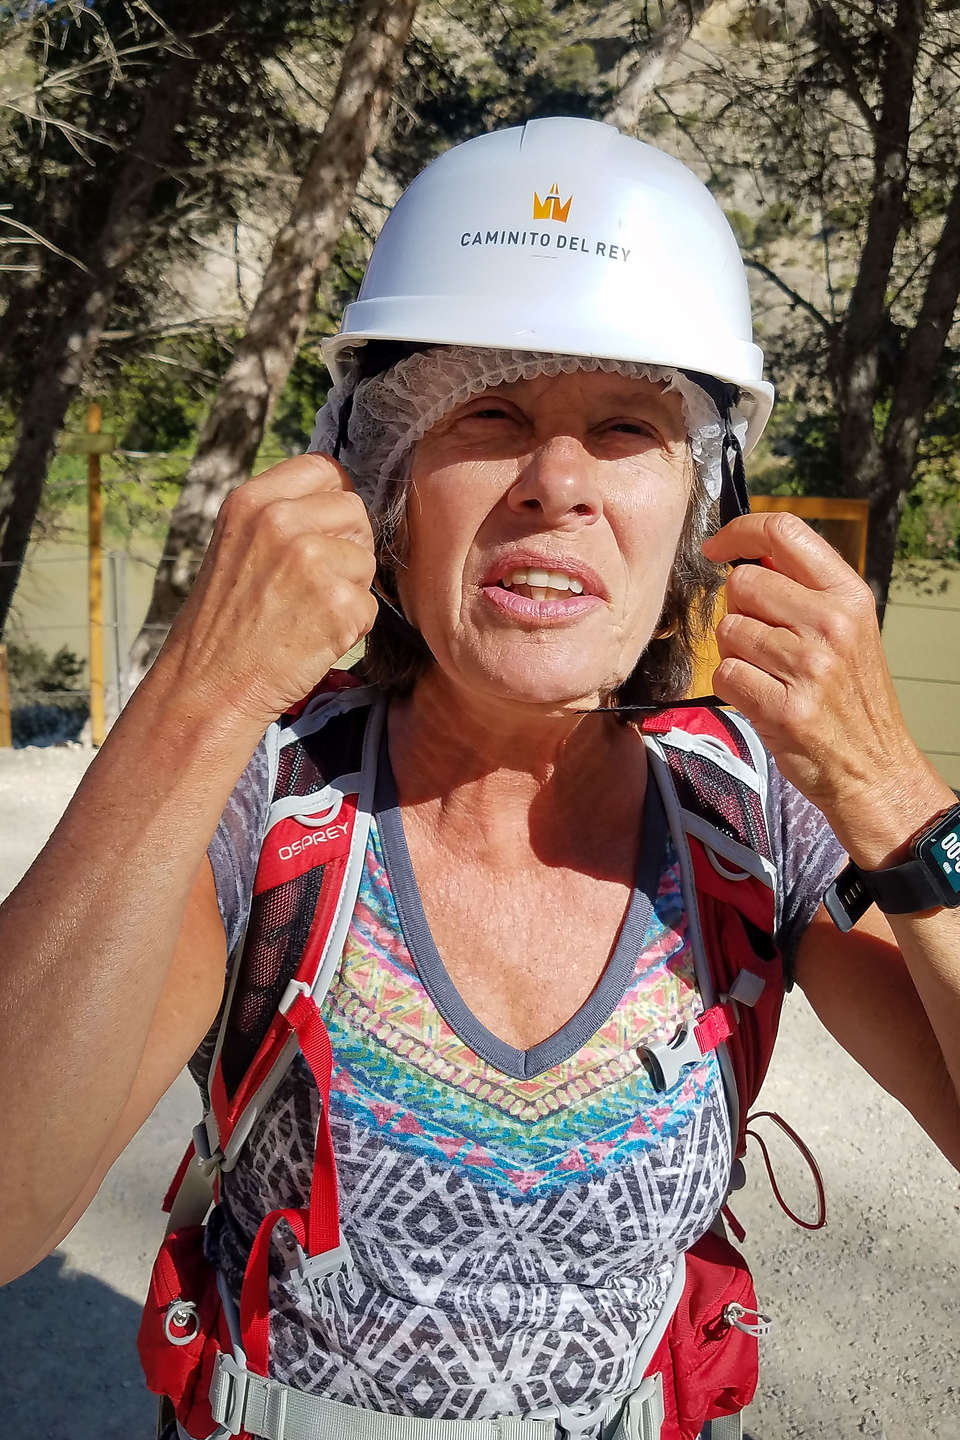 Lolo donning her hairnet and helmet in preparation for the Caminito del Rey